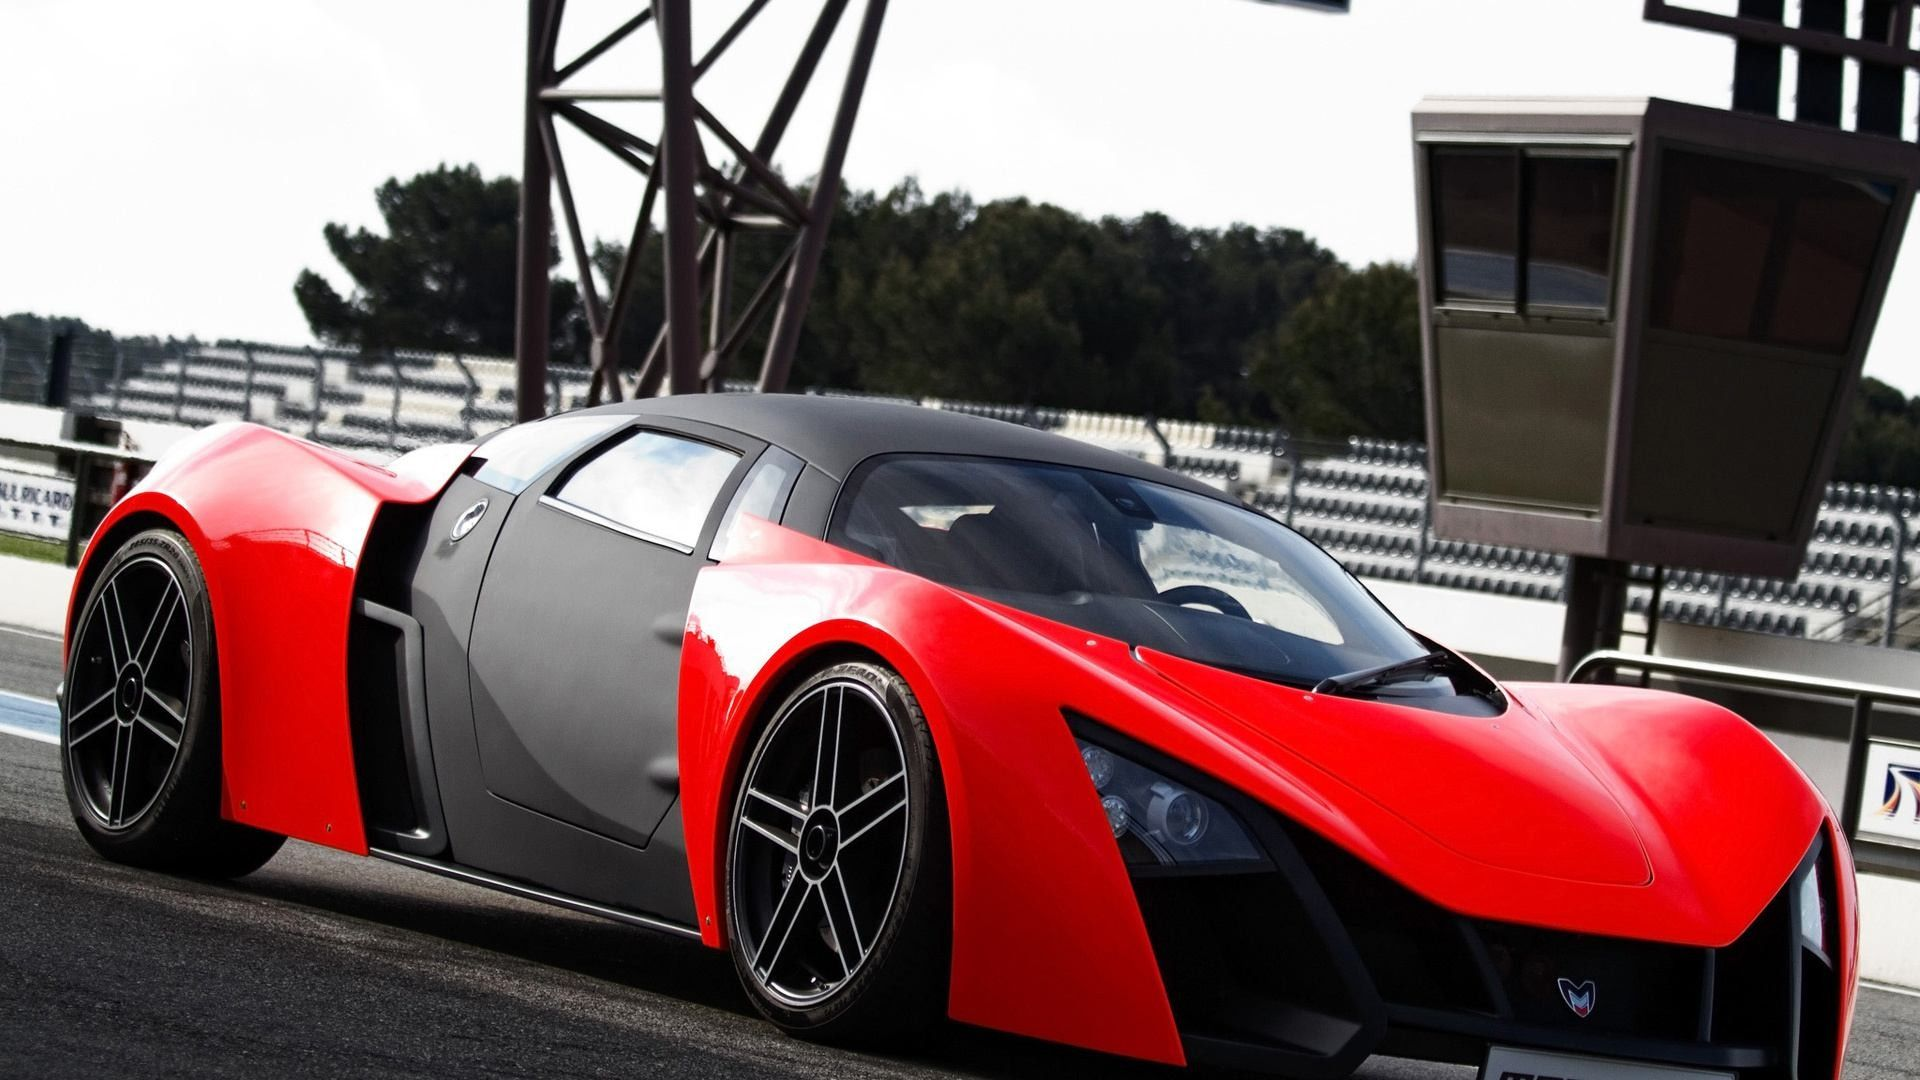 Free Download Hd Wallpapers Of Sports Cars